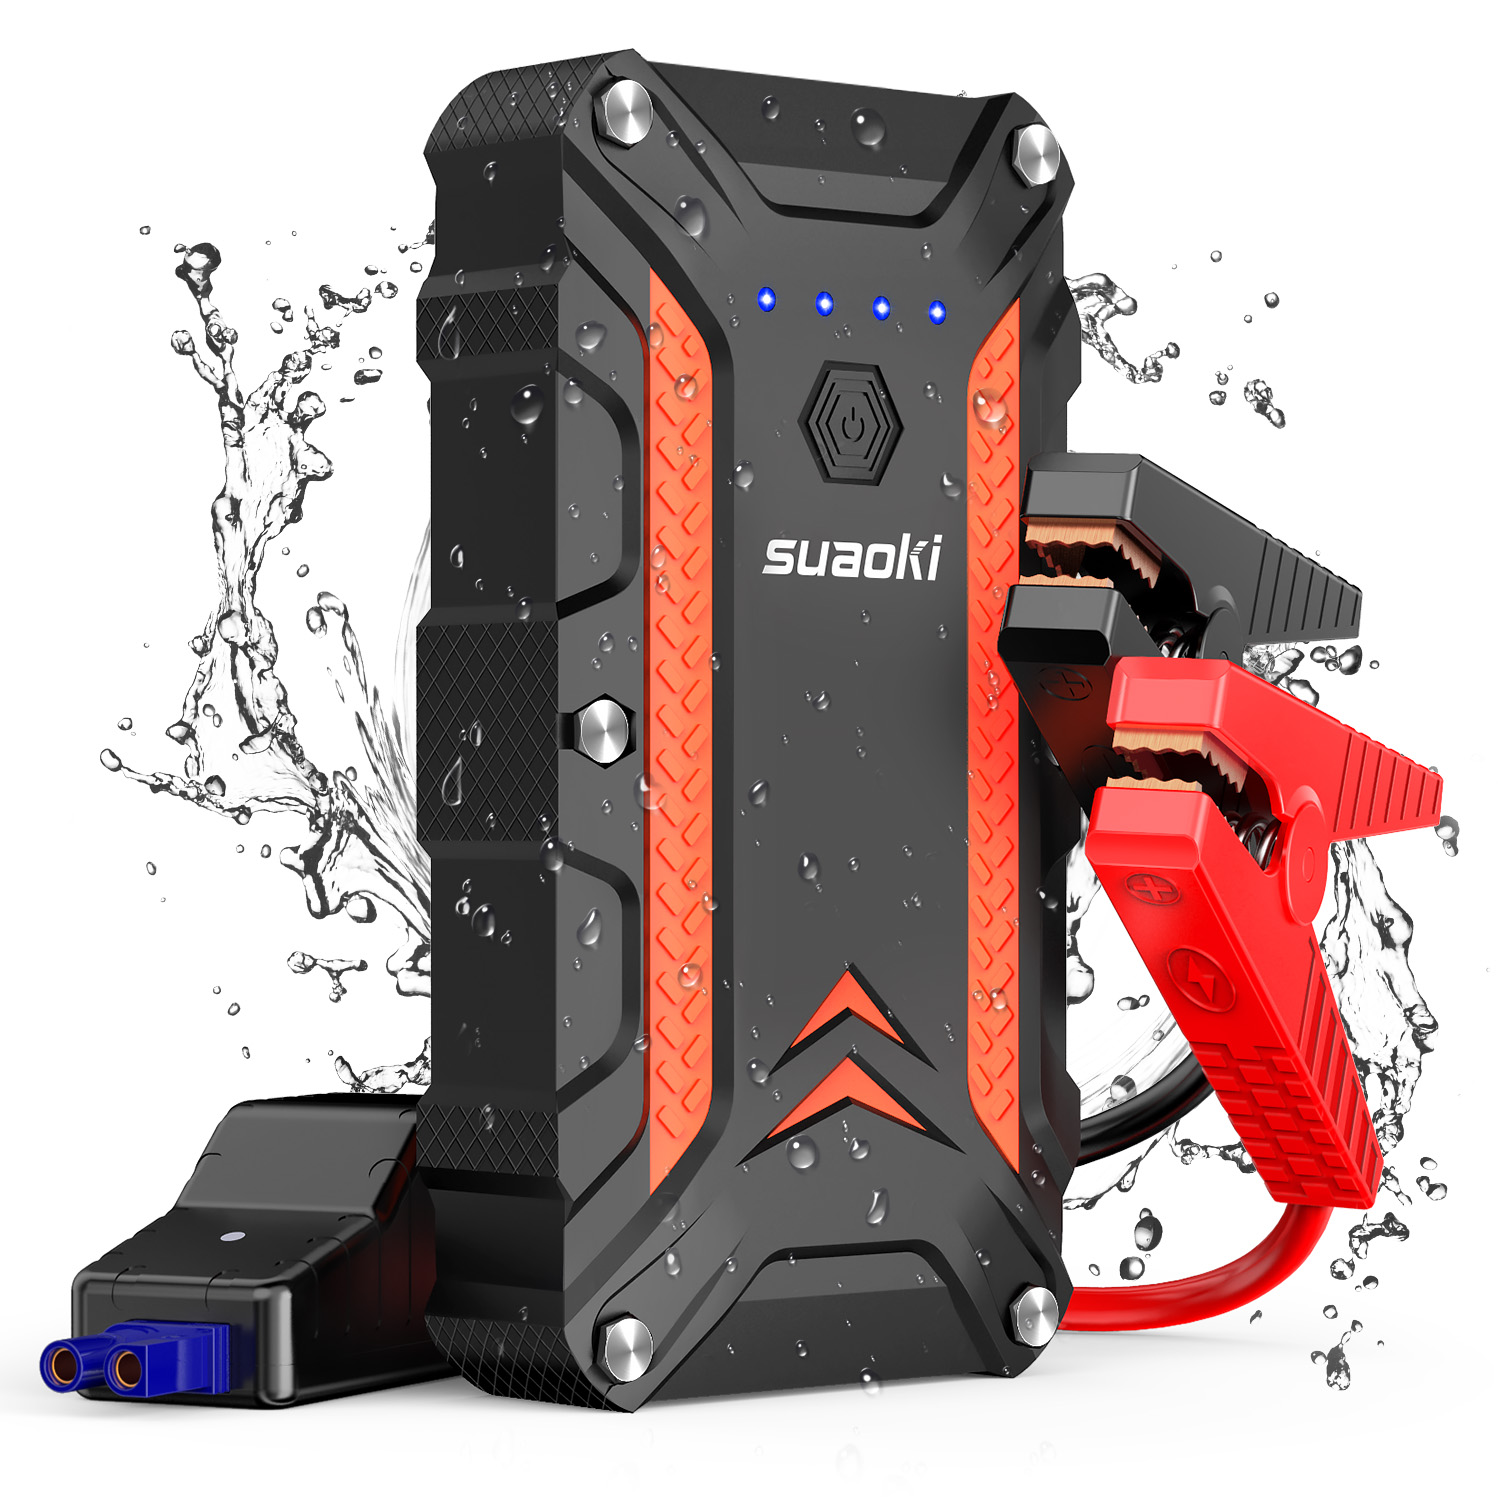 SUAOKI CJS02 1000A Peak Car Jump Starter 7.0L Gas 5.0L Diesel Engine Auto Battery Booster QC3.0 Power Bank with Type C LED light